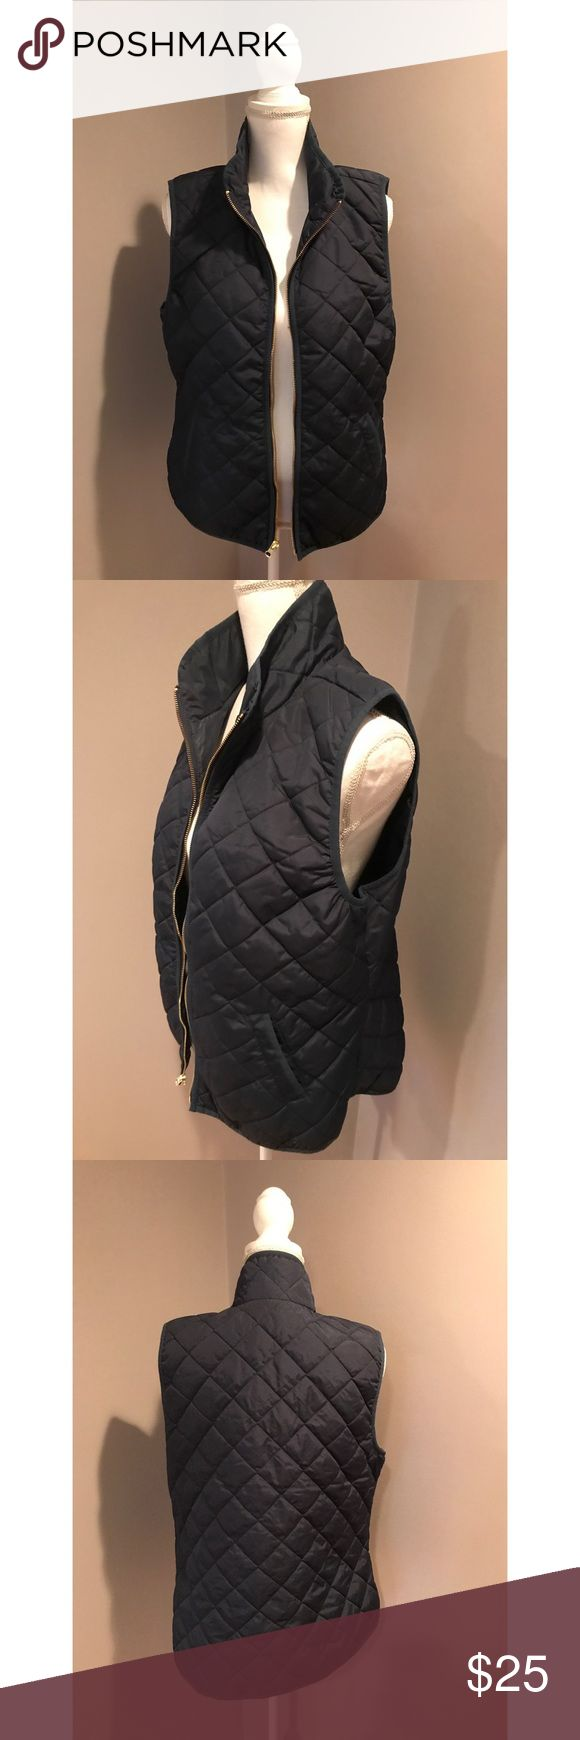 Old Navy Quilted Barn Vest - L - EUC! Old Navy Quilted Barn Vest. Size L. Navy blue. Side pockets. In excellent condition! From a smoke-free home as well. No trades. Firm price! Bundle for a discount! Old Navy Jackets & Coats Vests